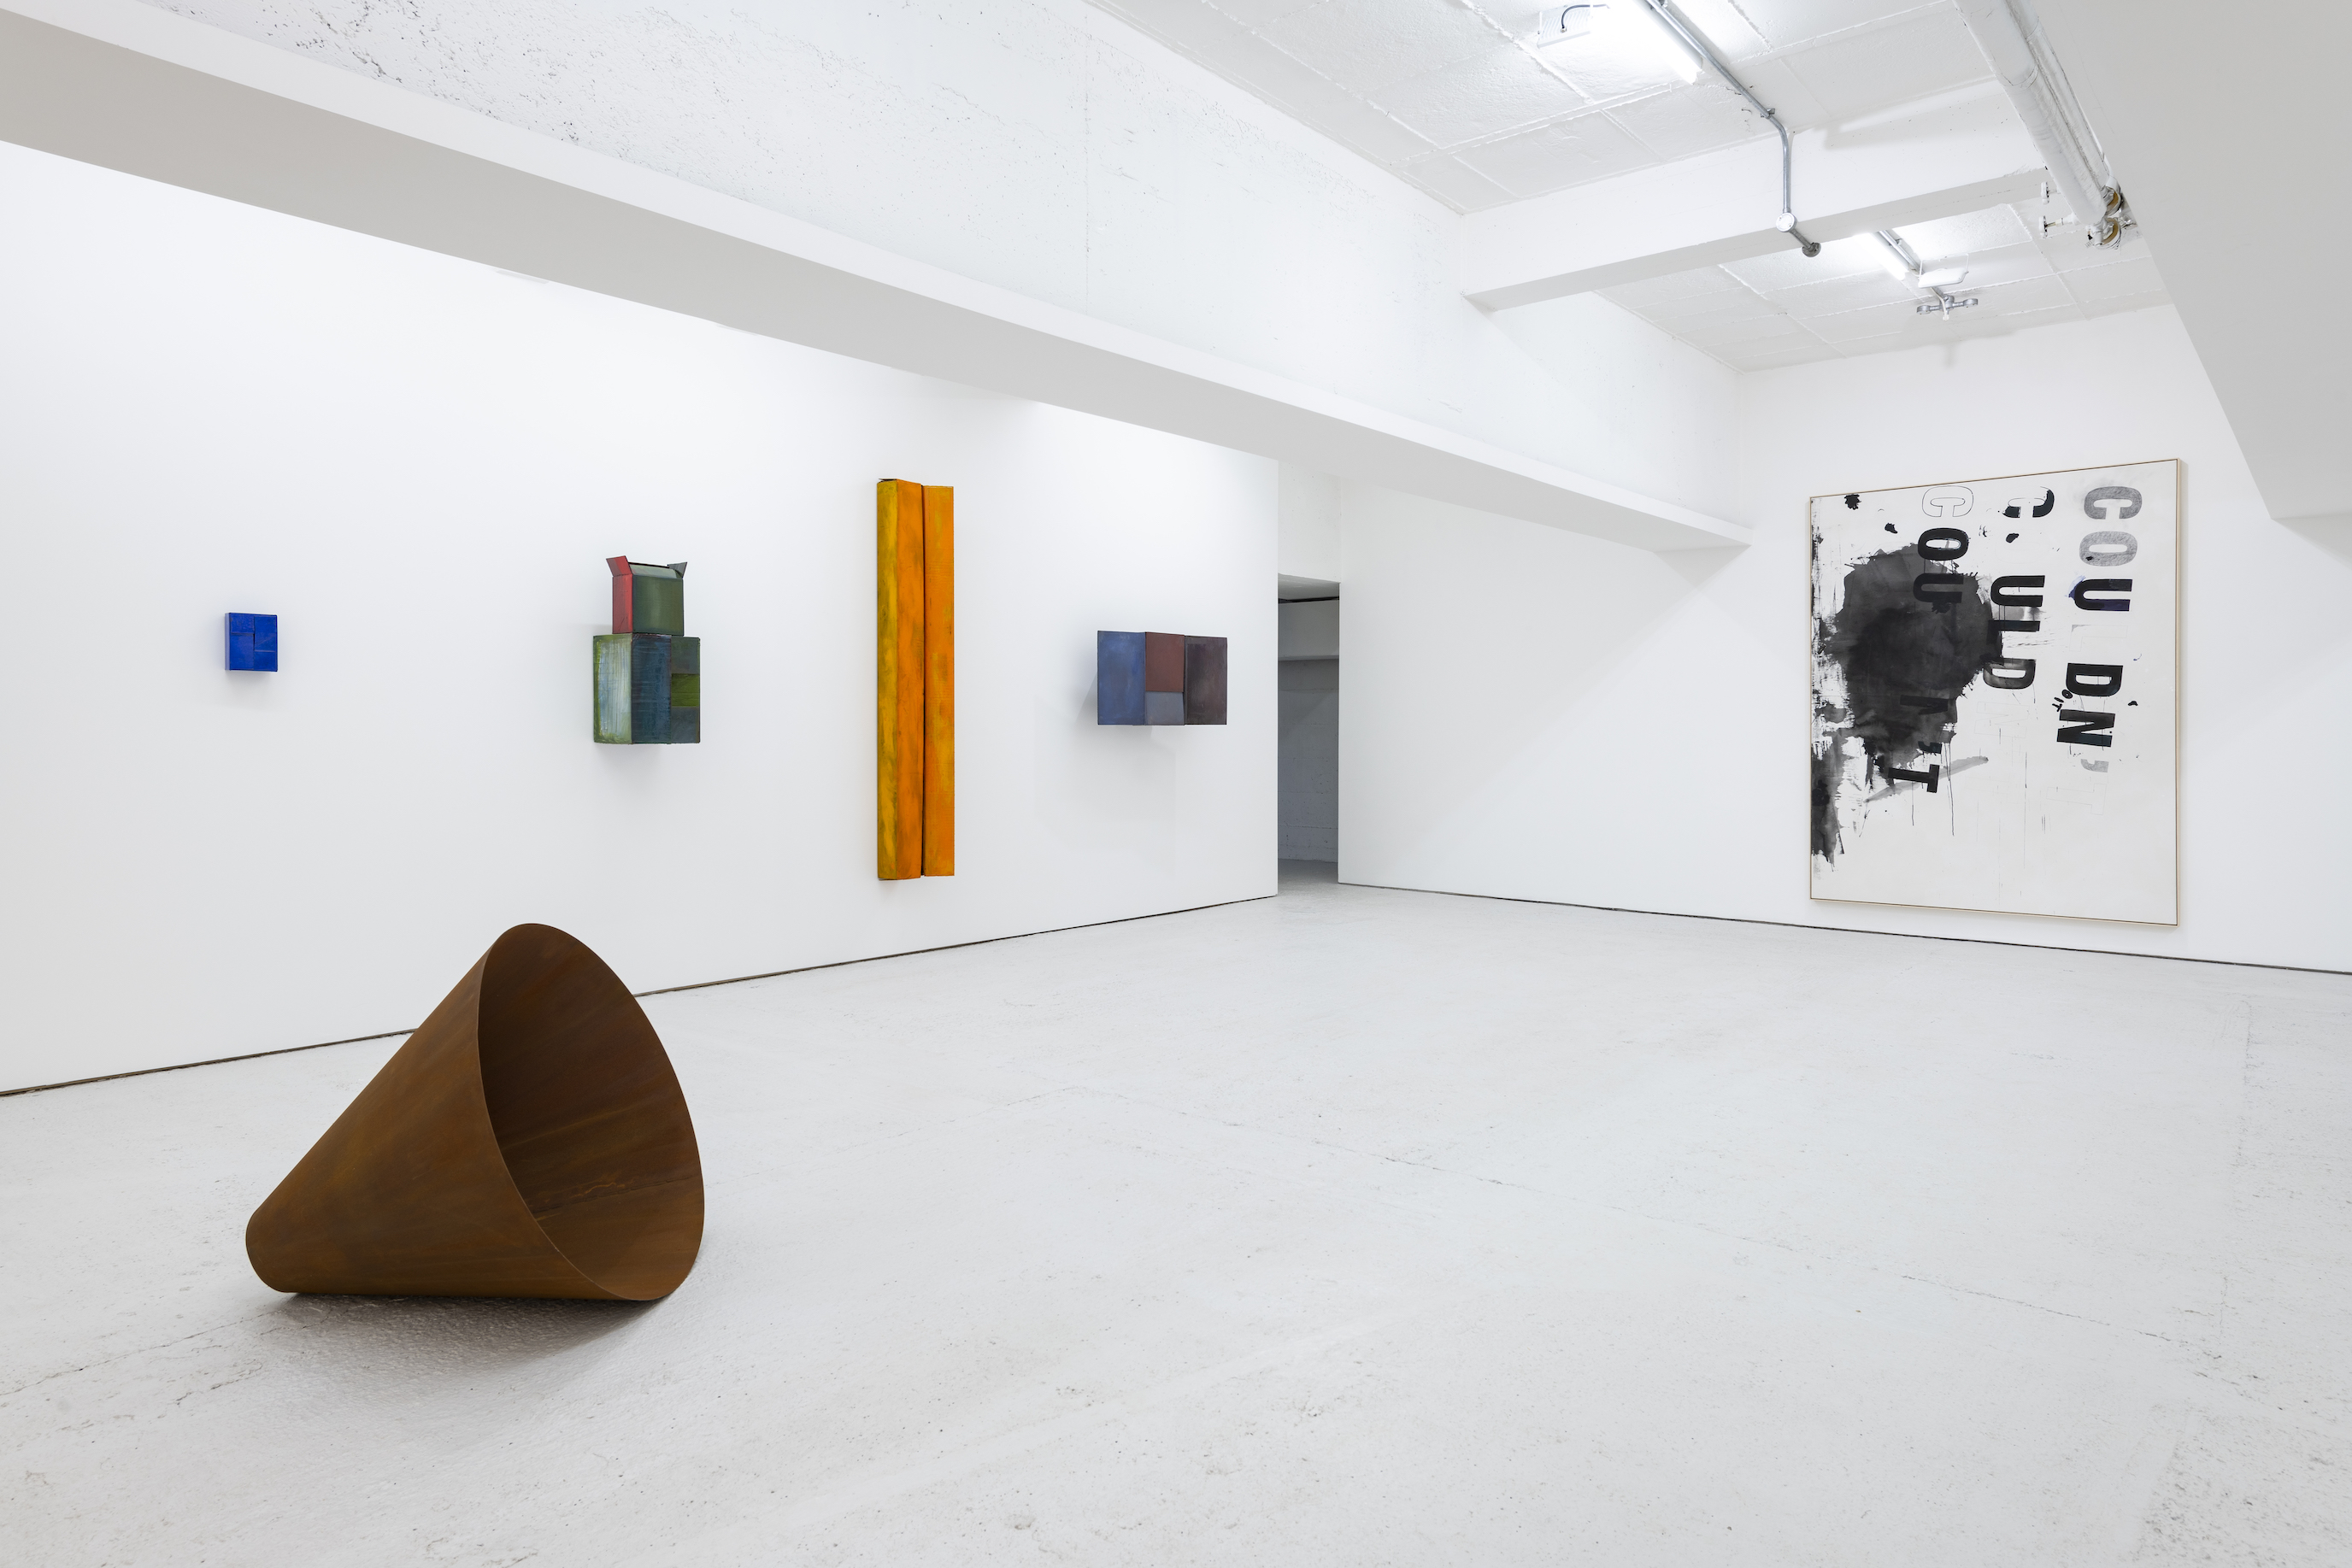 Installation view 1, Open Call, König London, 2020. photo by Damian Griffiths